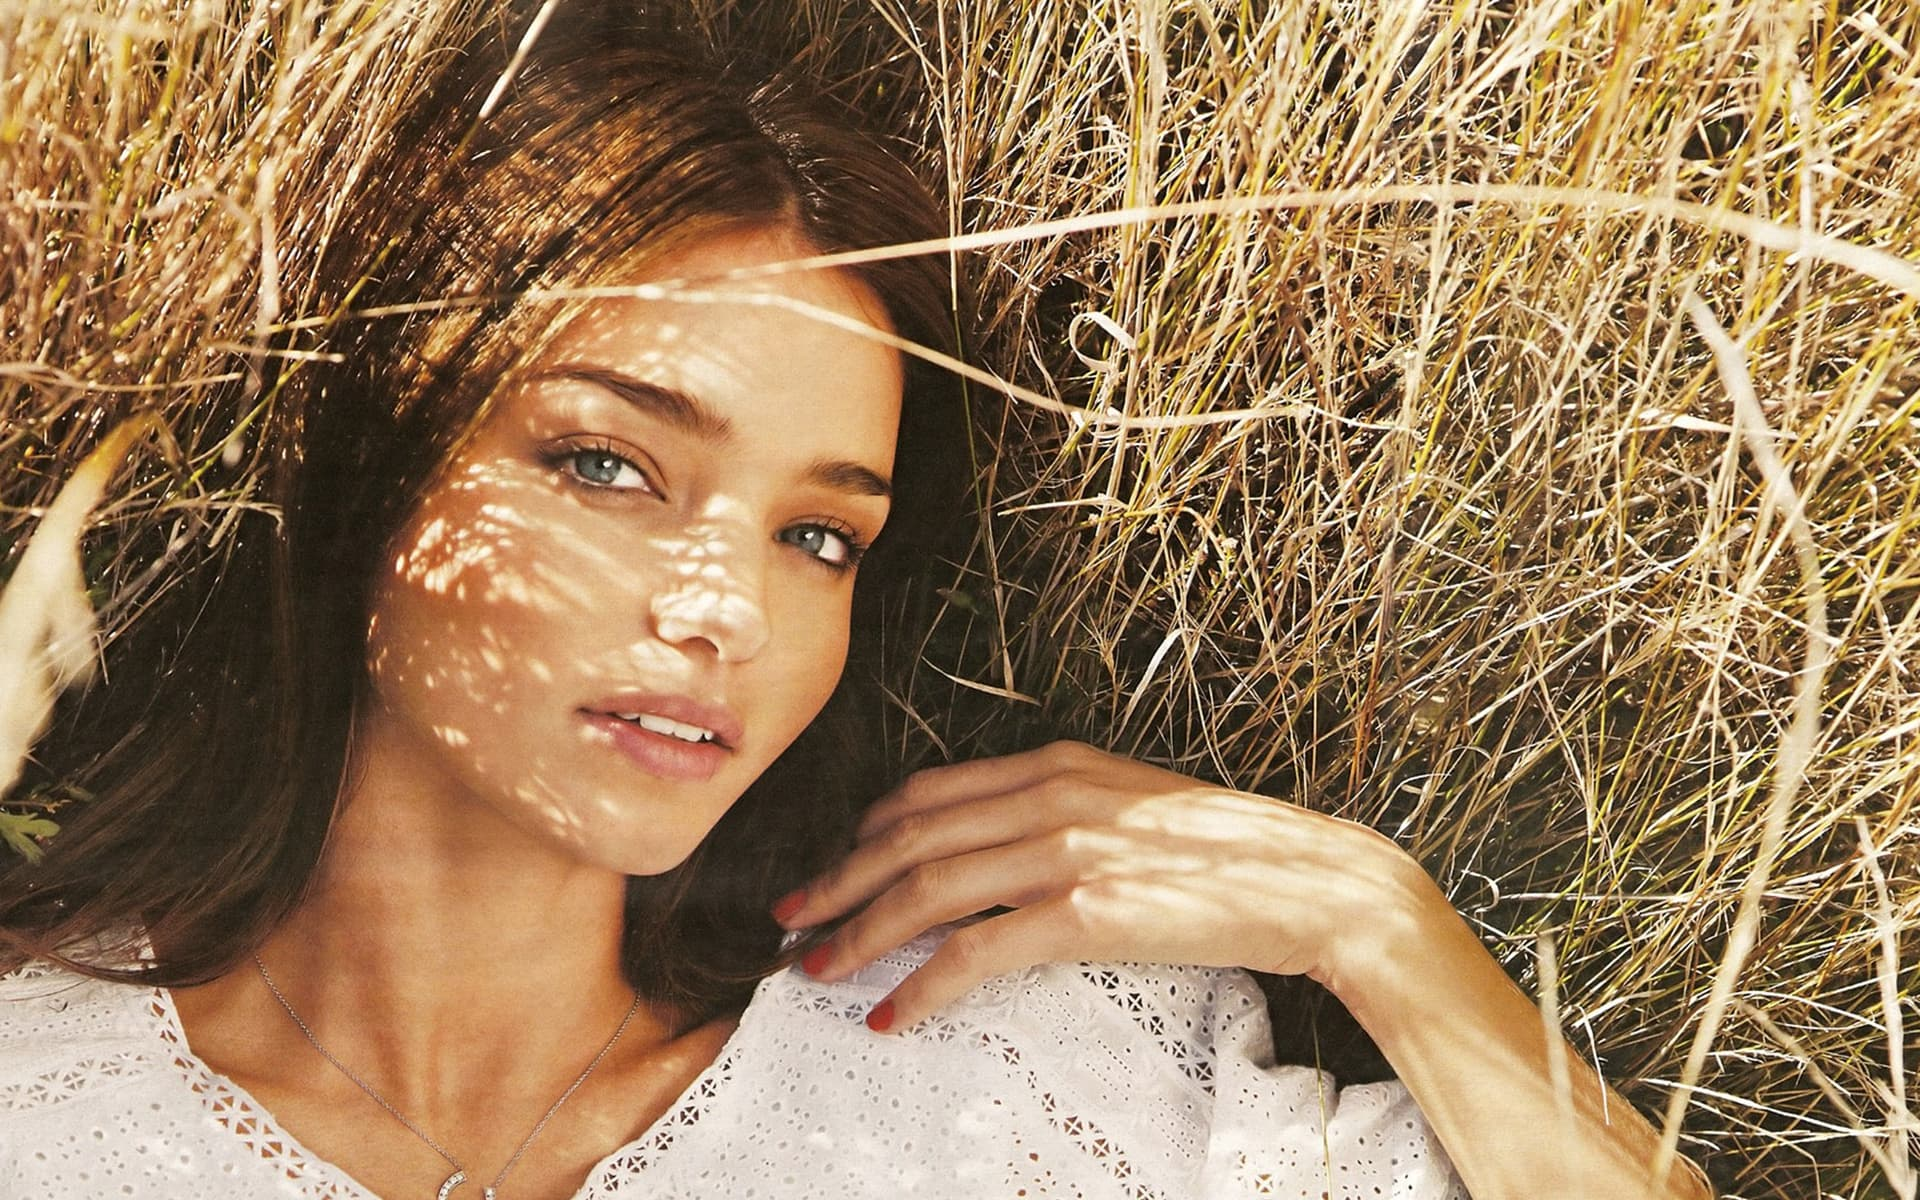 40+ Miranda Kerr wallpapers HD High Quality Resolution Download